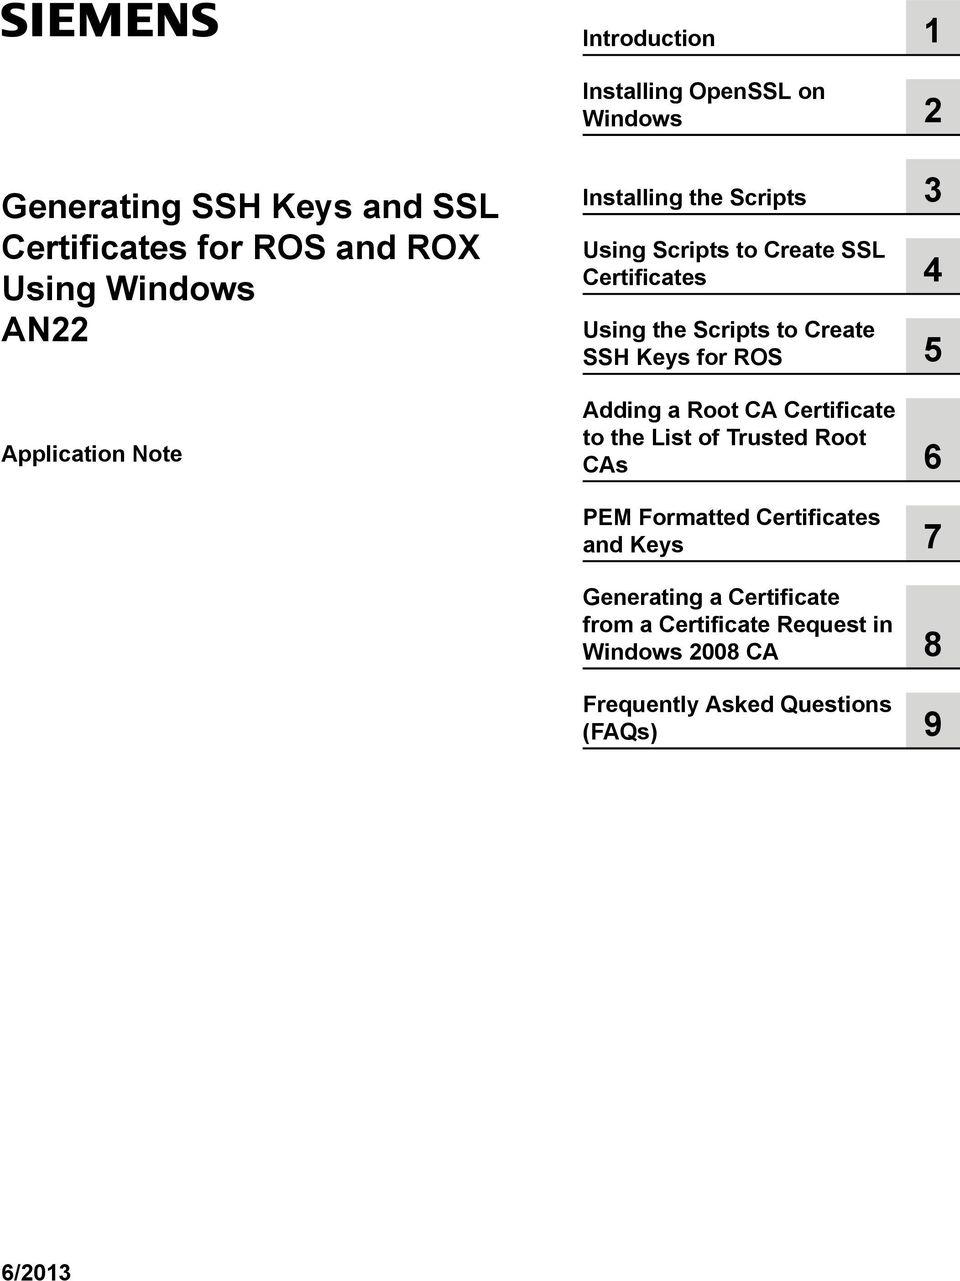 Generating Ssh Keys And Ssl Certificates For Ros And Rox Using